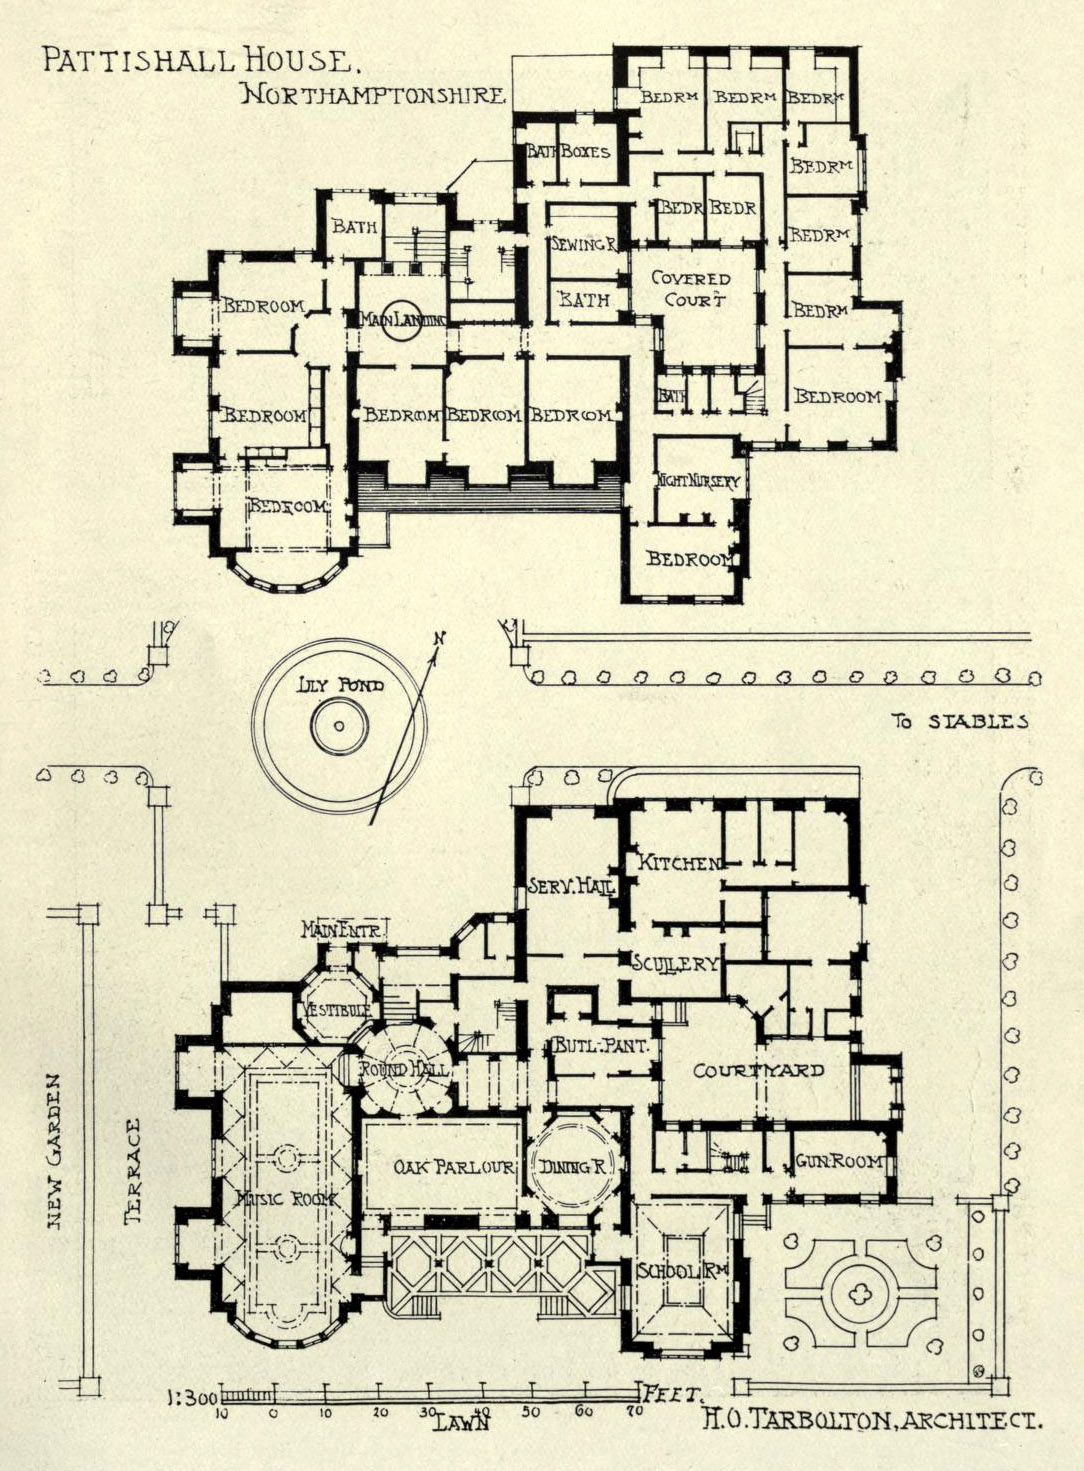 Plan Of Pattishall House Northamptonshire Just My Holiday House On The Beach Nothing Much Castle Floor Plan Mansion Floor Plan How To Plan